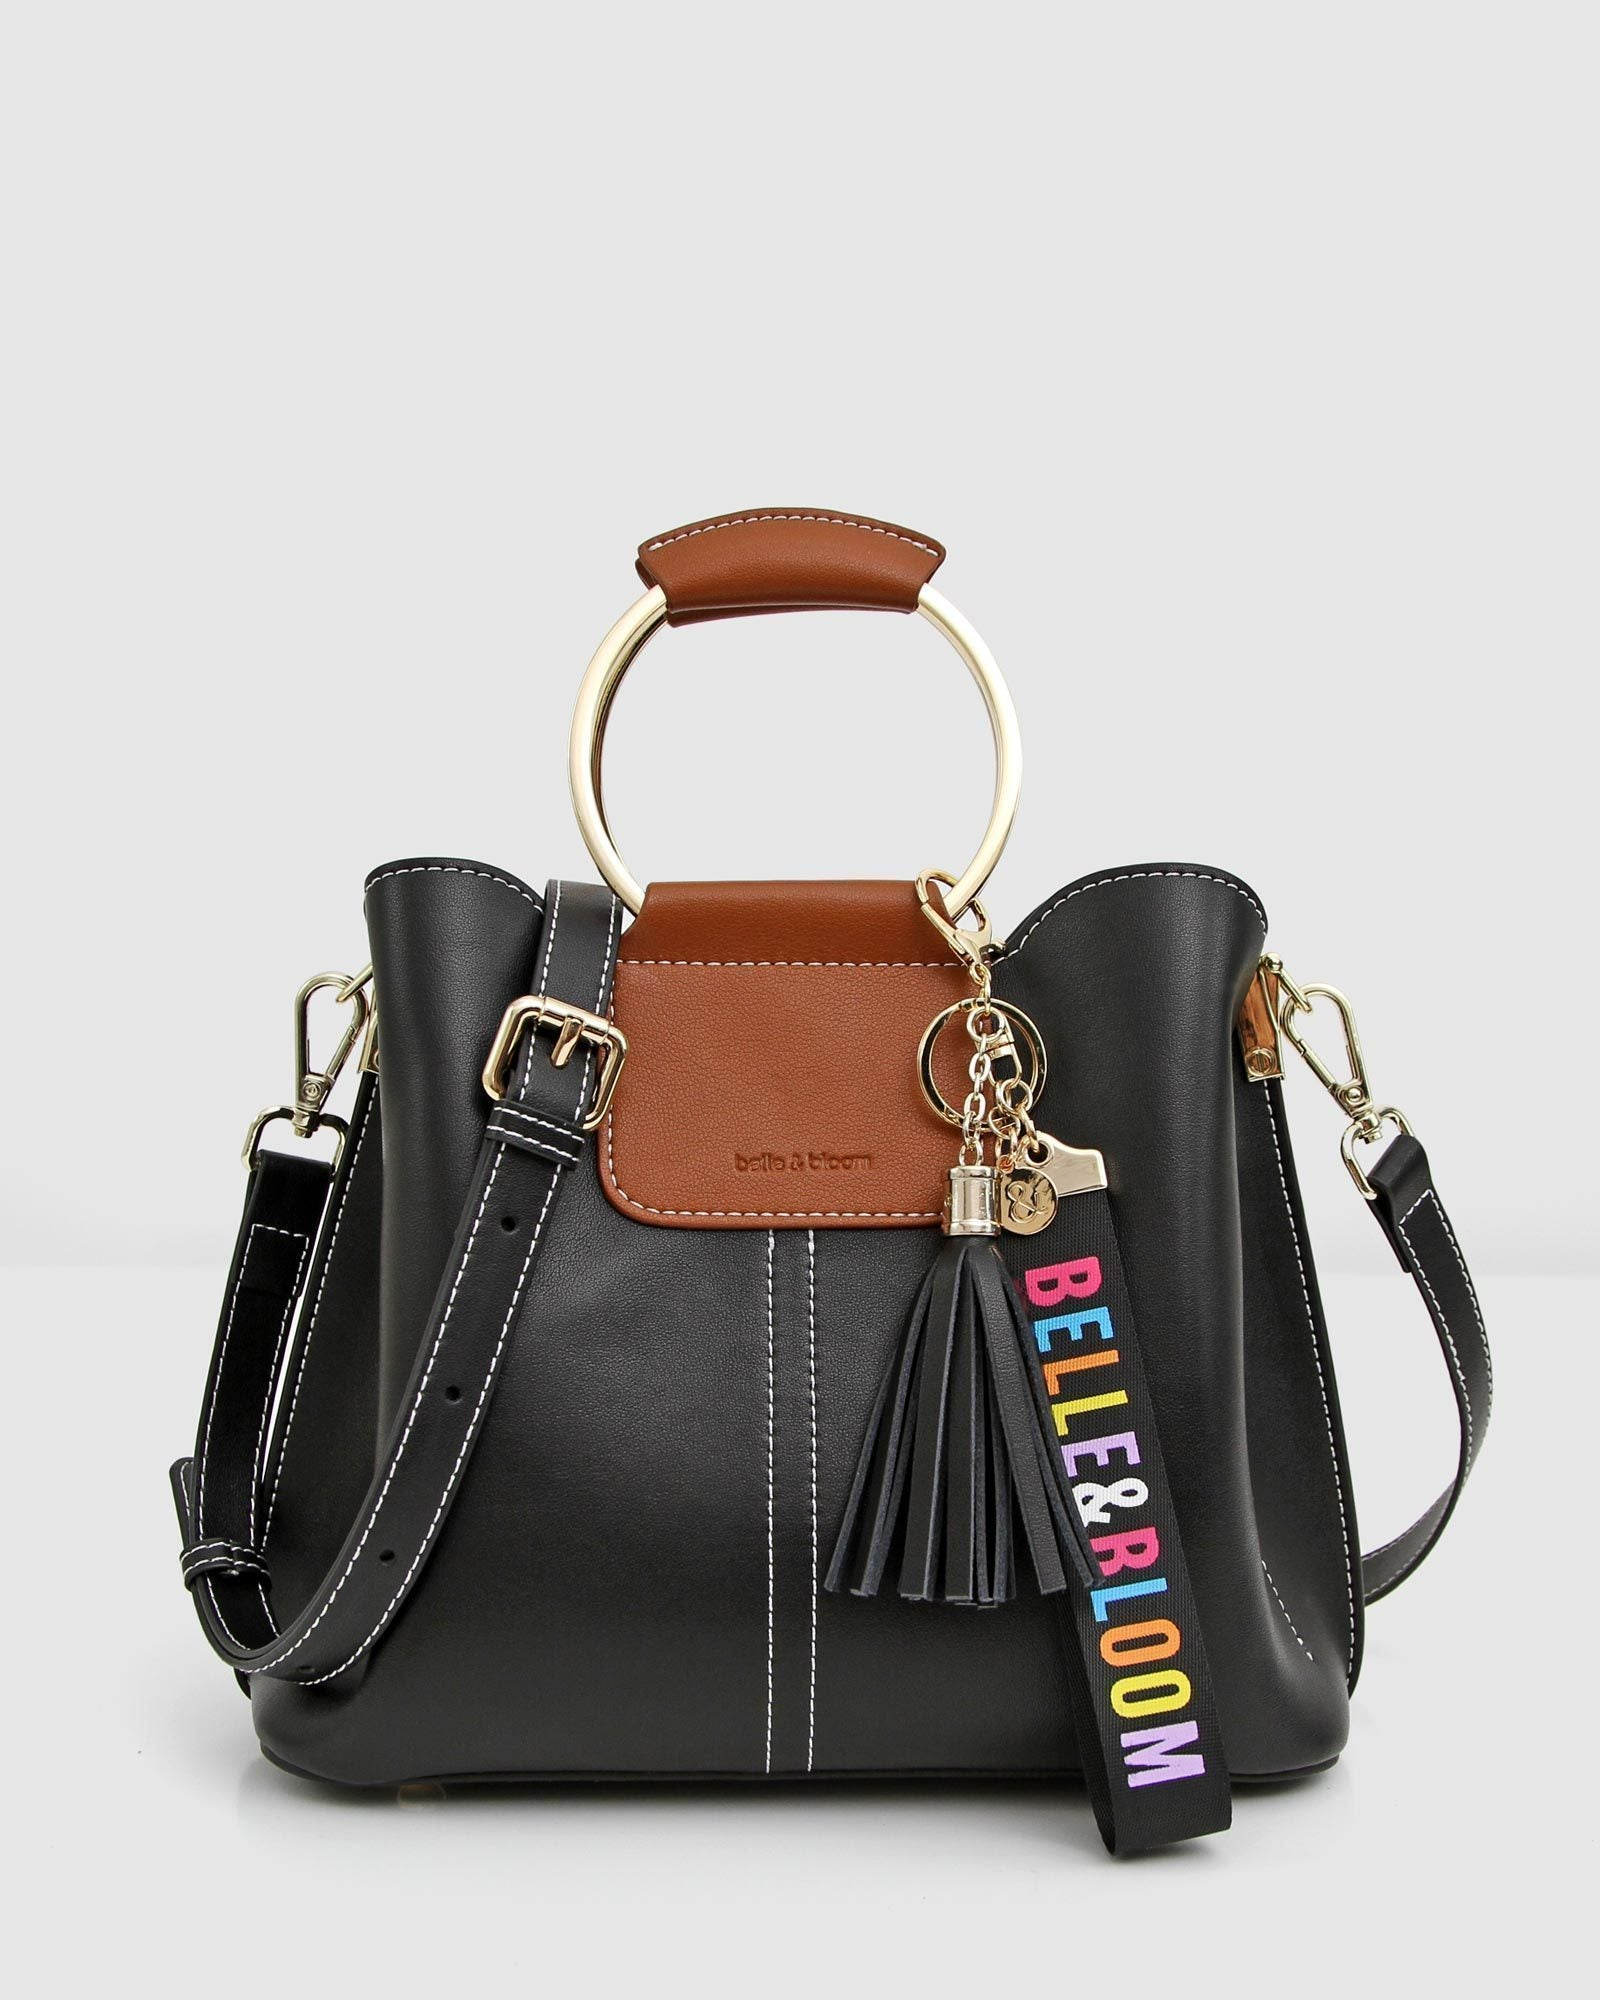 Twilight Leather Cross-Body Bag - Black / Brown